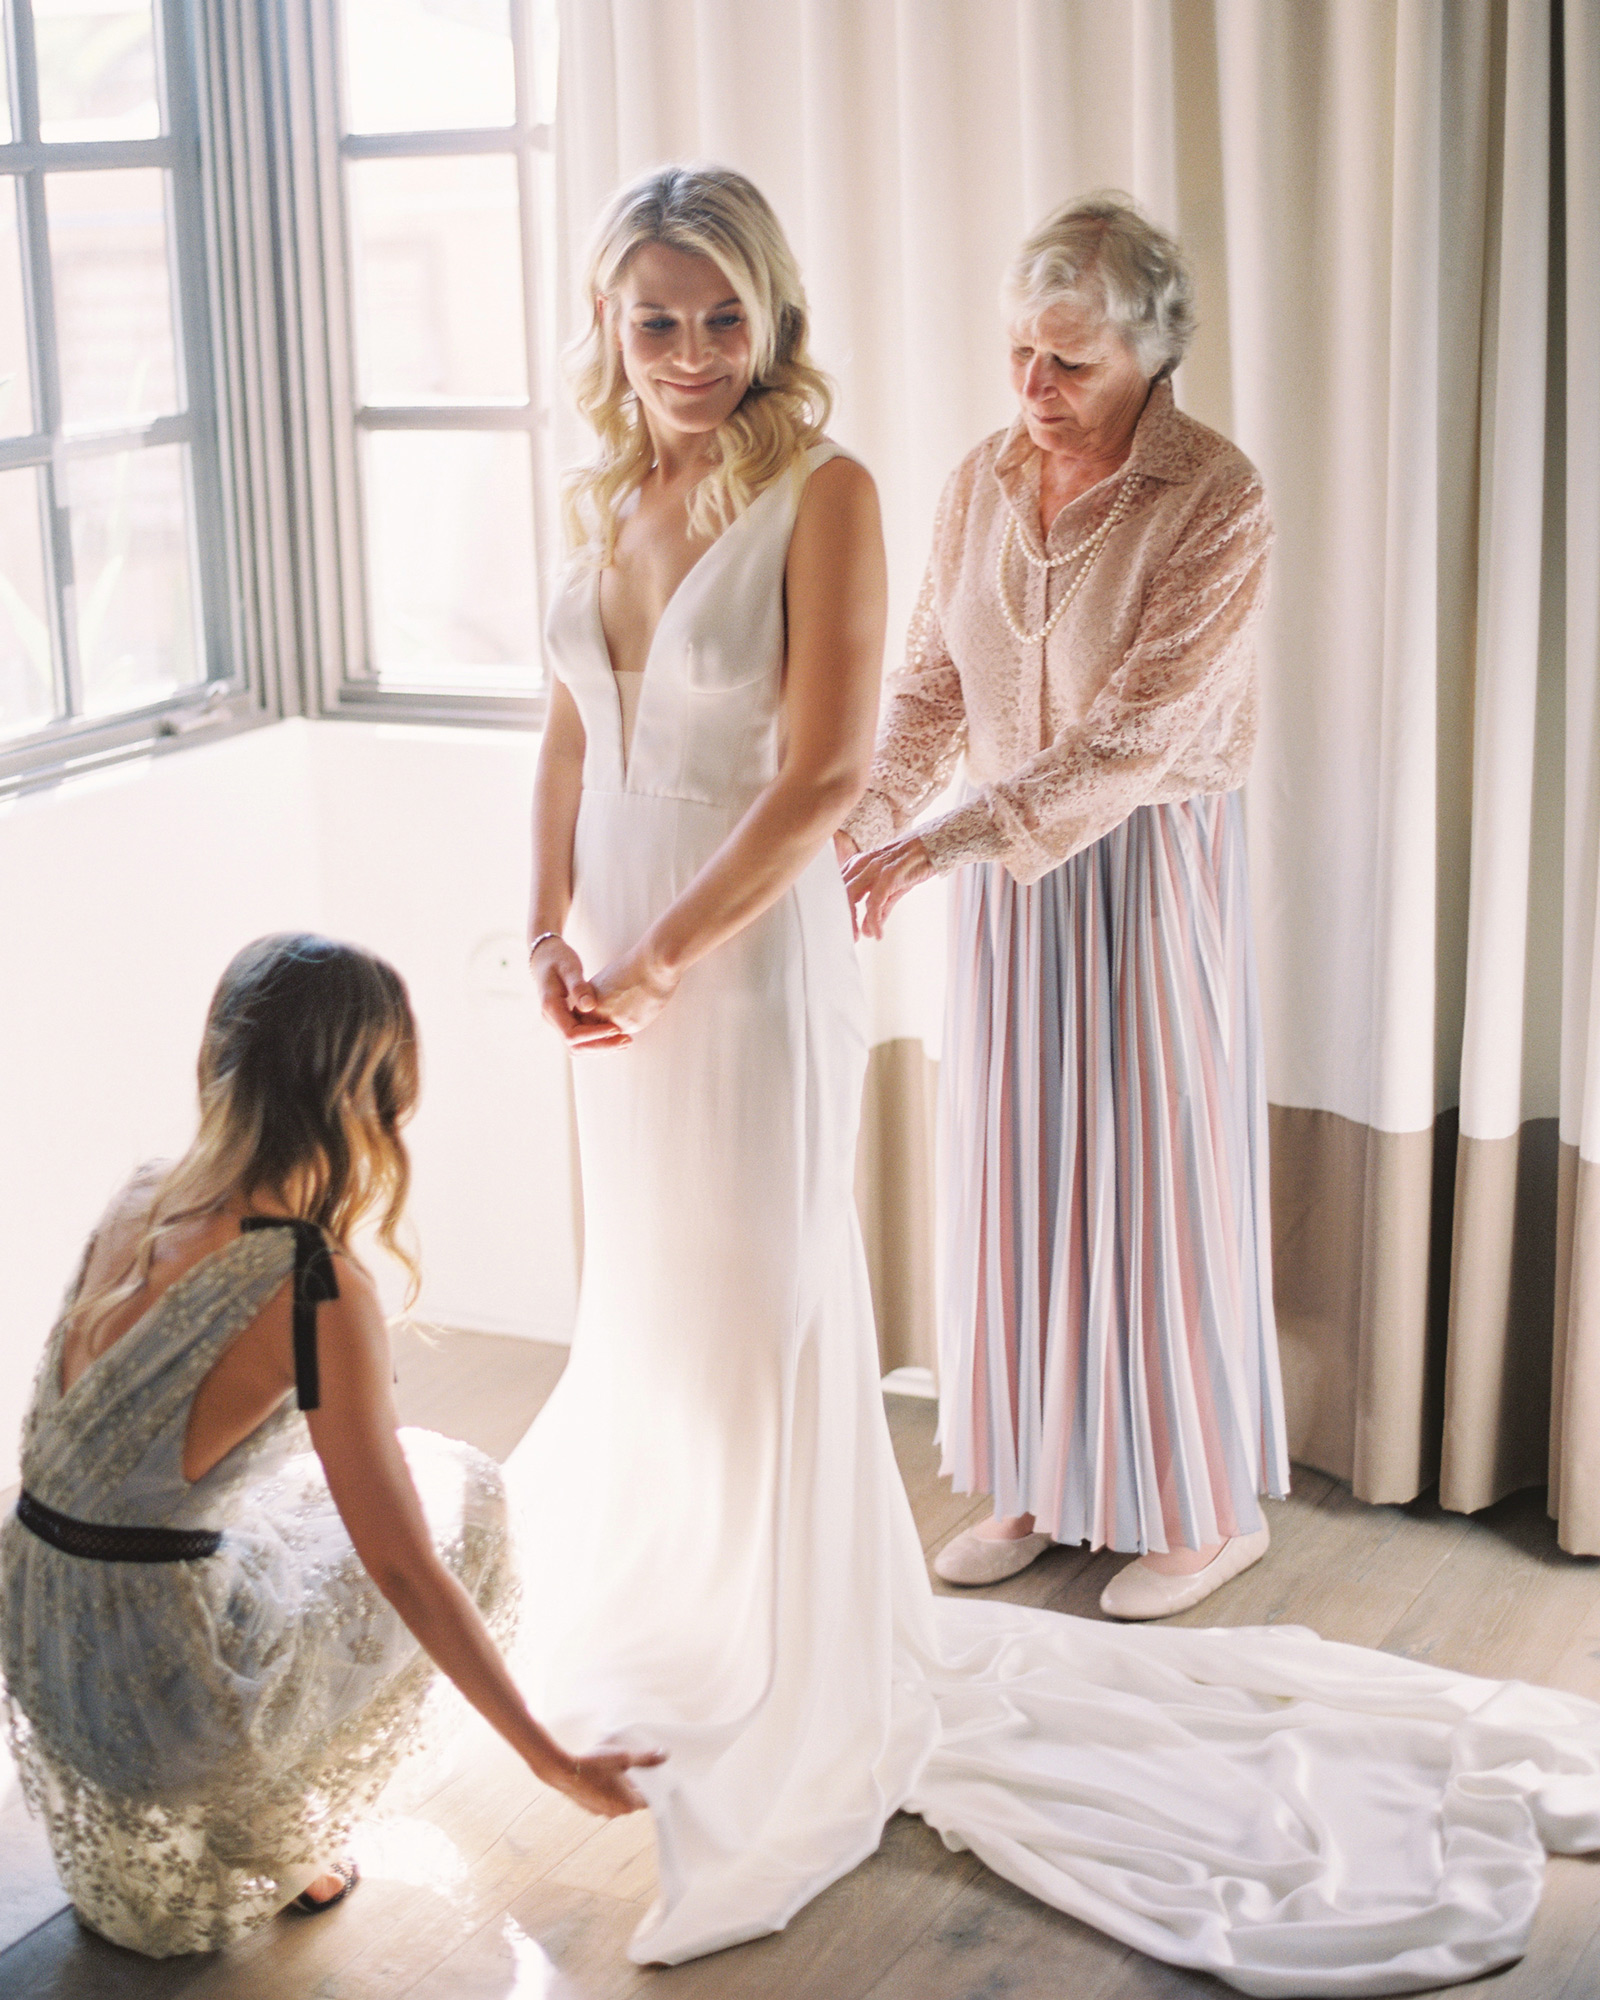 bride getting ready in bridal gown